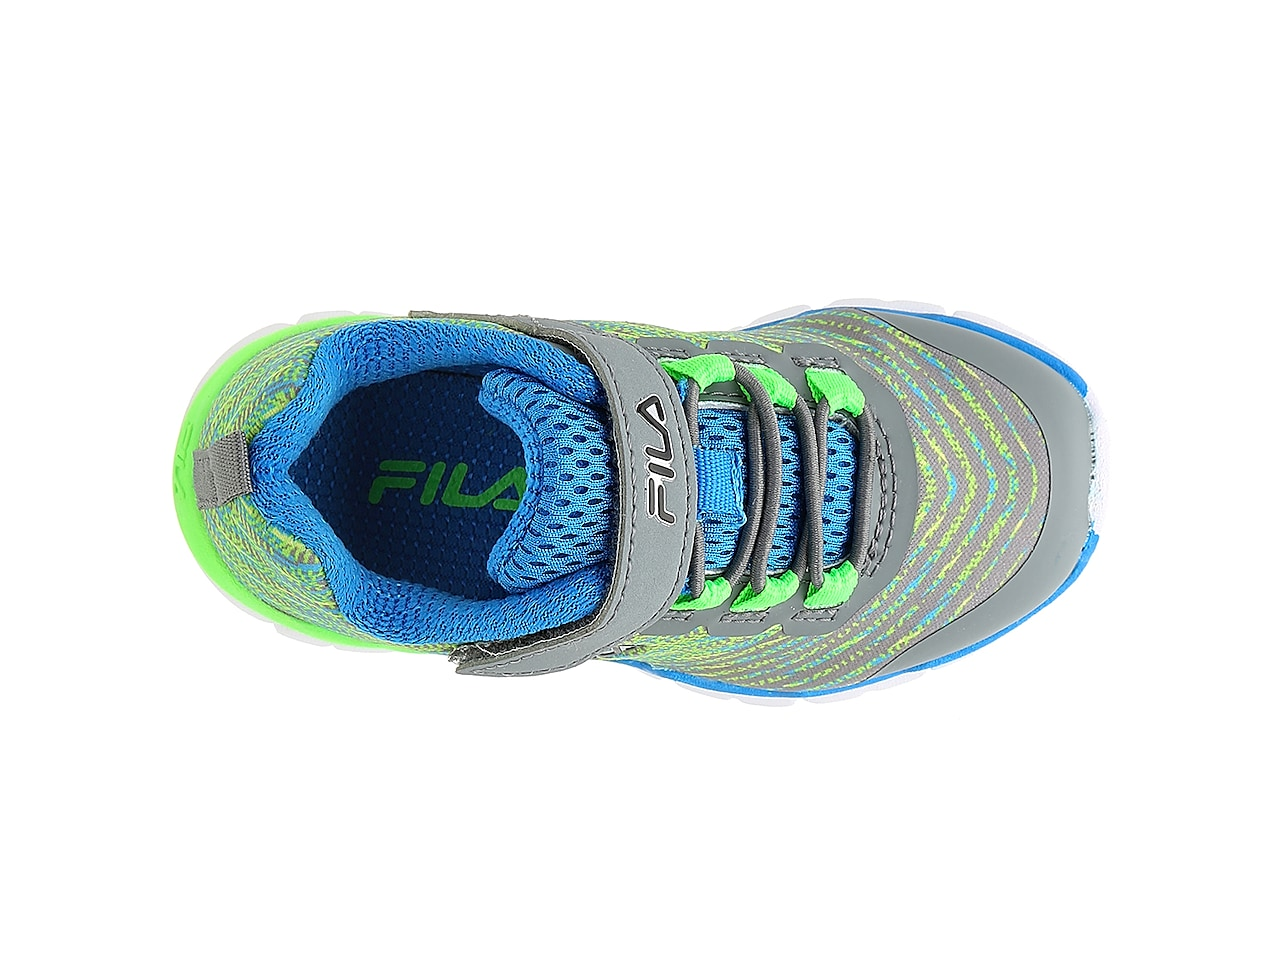 fila boys overfuel 2 running shoe review